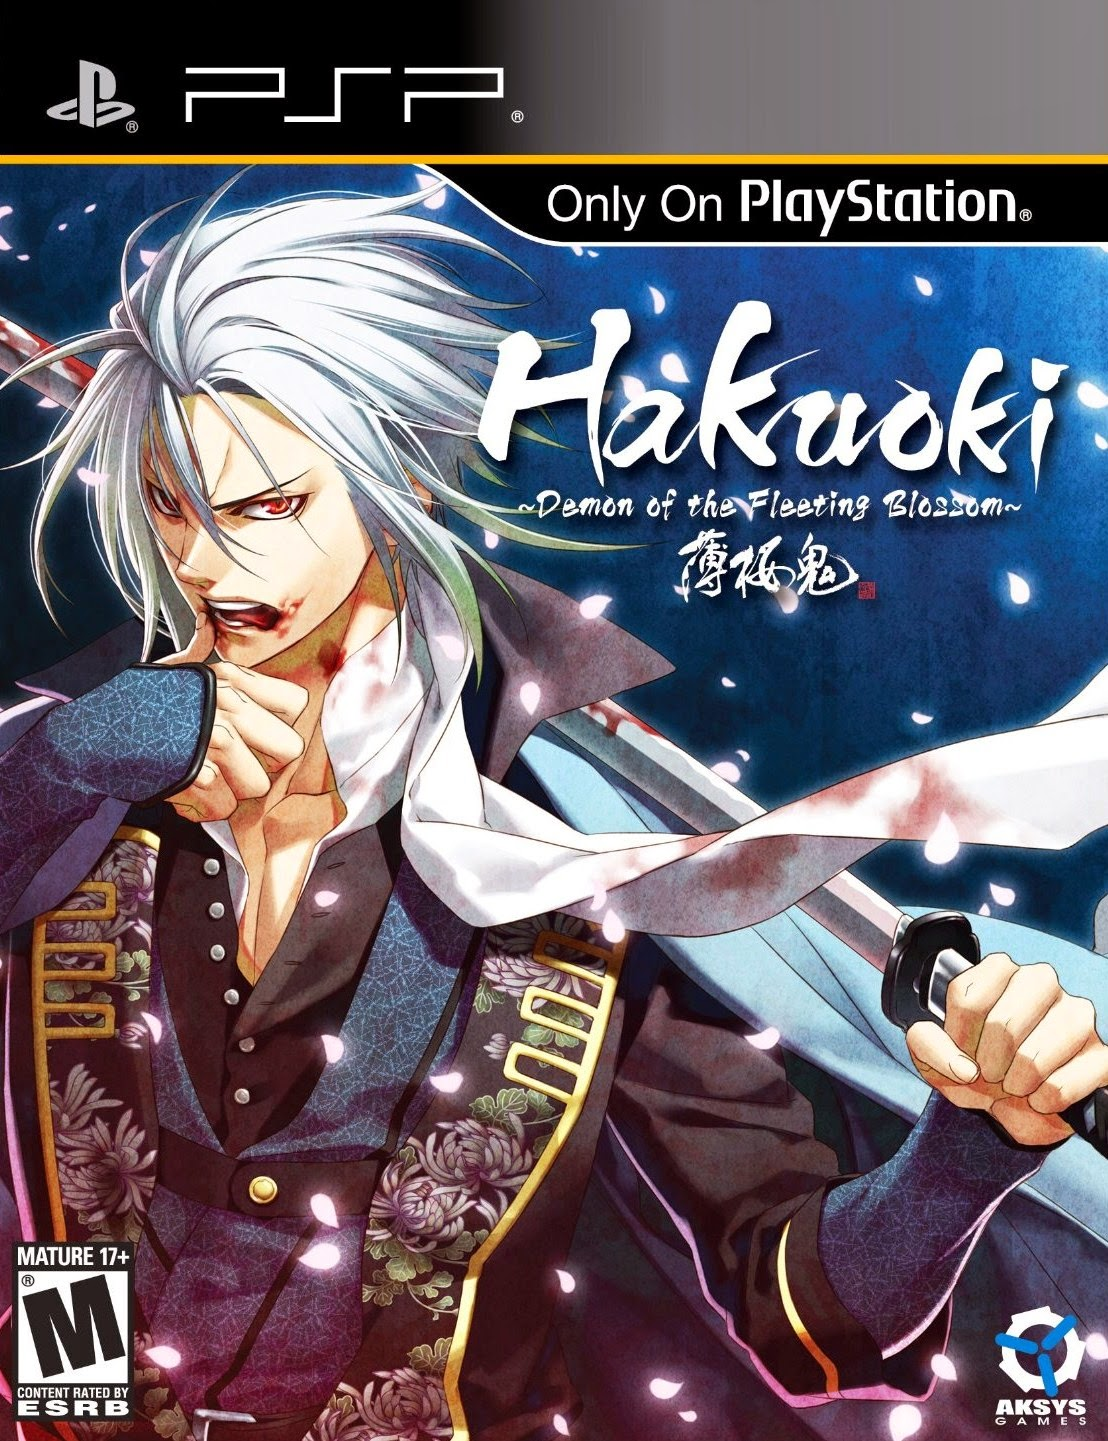 Hakuoki Demon of The Fleeting Blossom Apk For Android Phones & Tablets